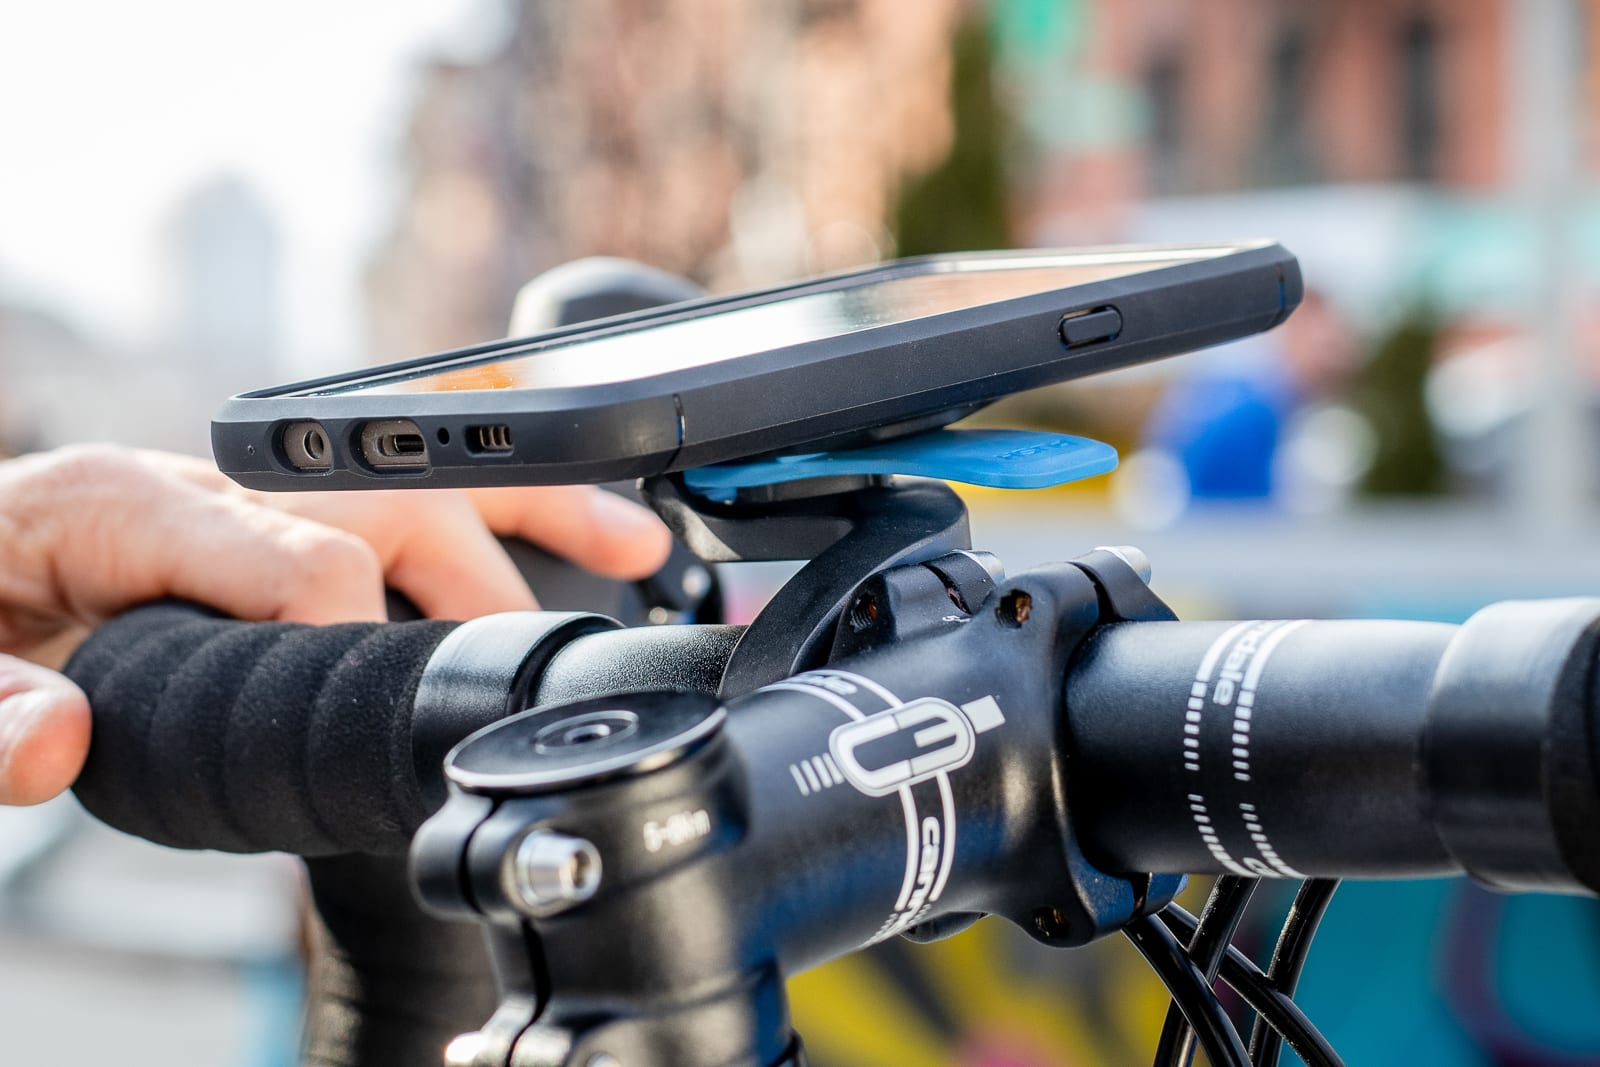 The best bike phone mount